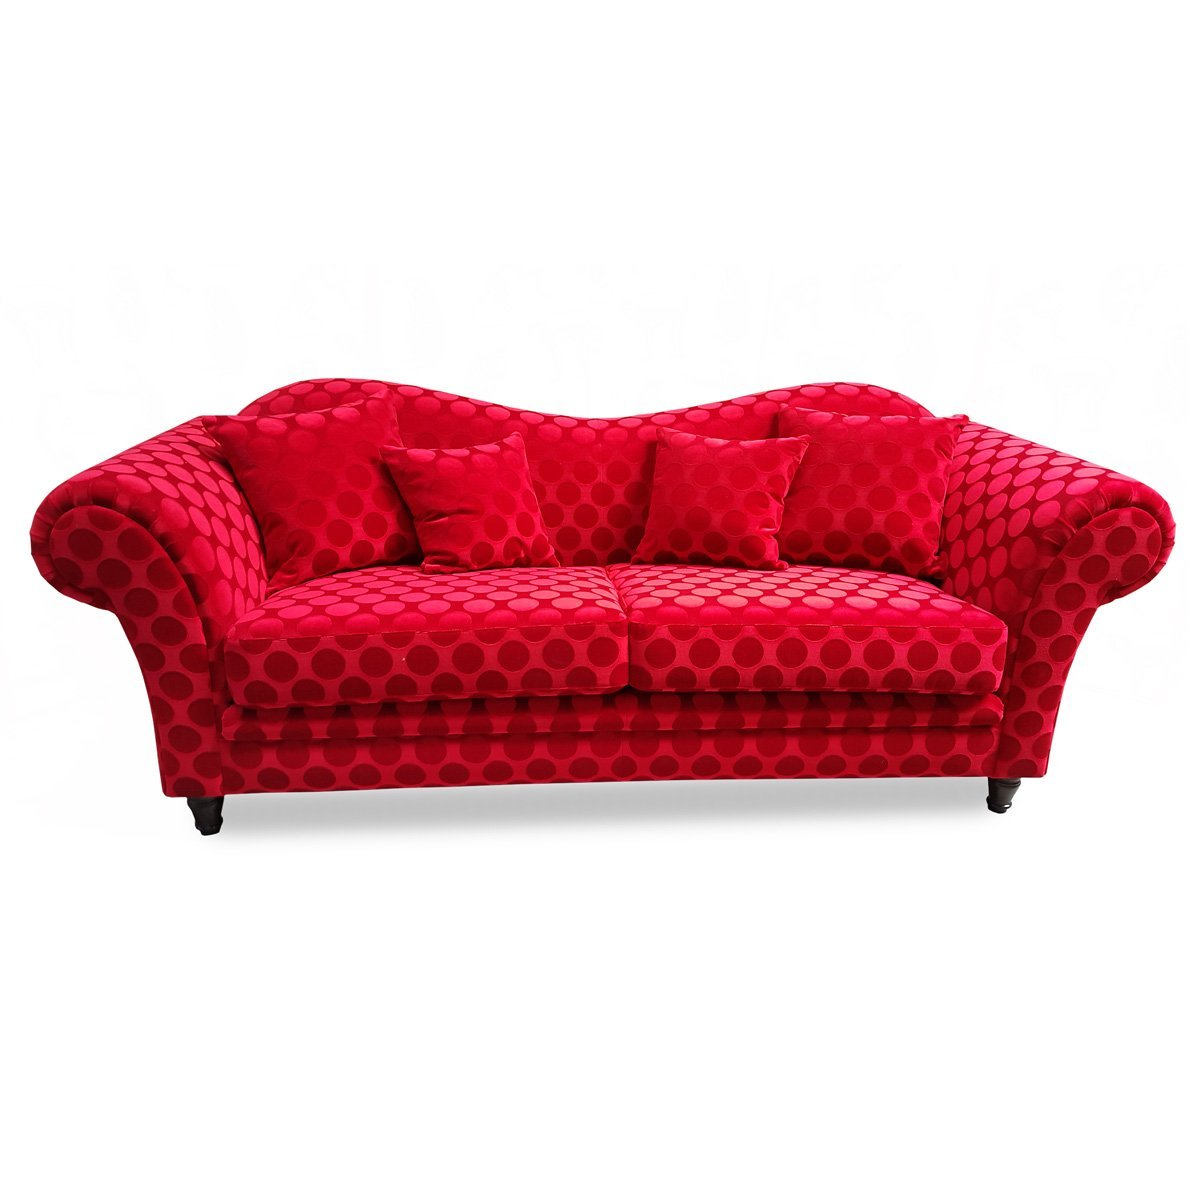 Canap convertible rouge design meubles et atmosph re - Canape convertible rouge ikea ...